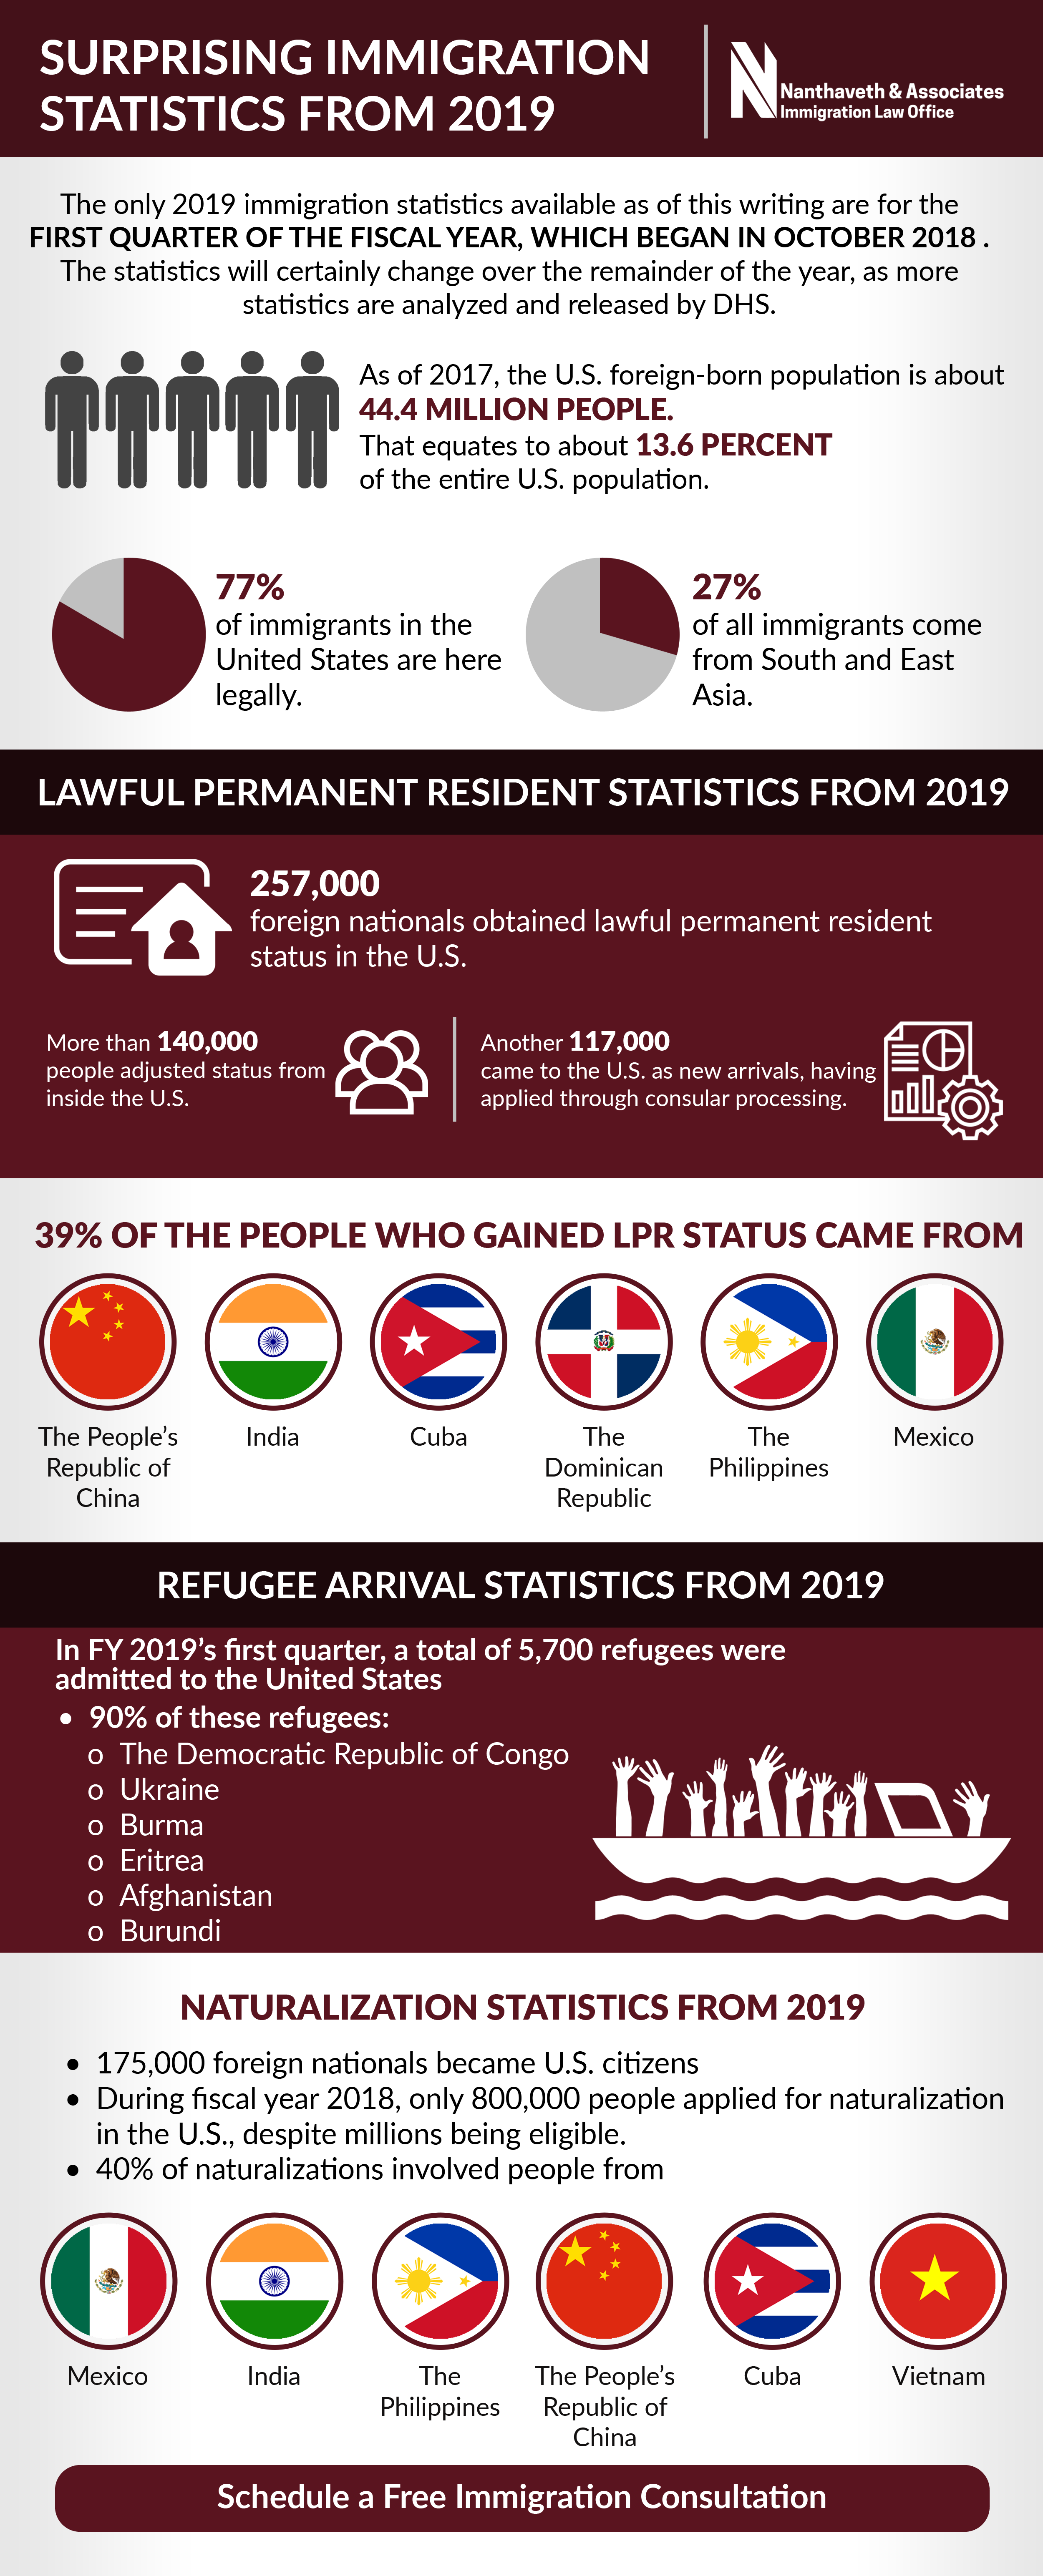 Surprising Immigration Statistics from 2019